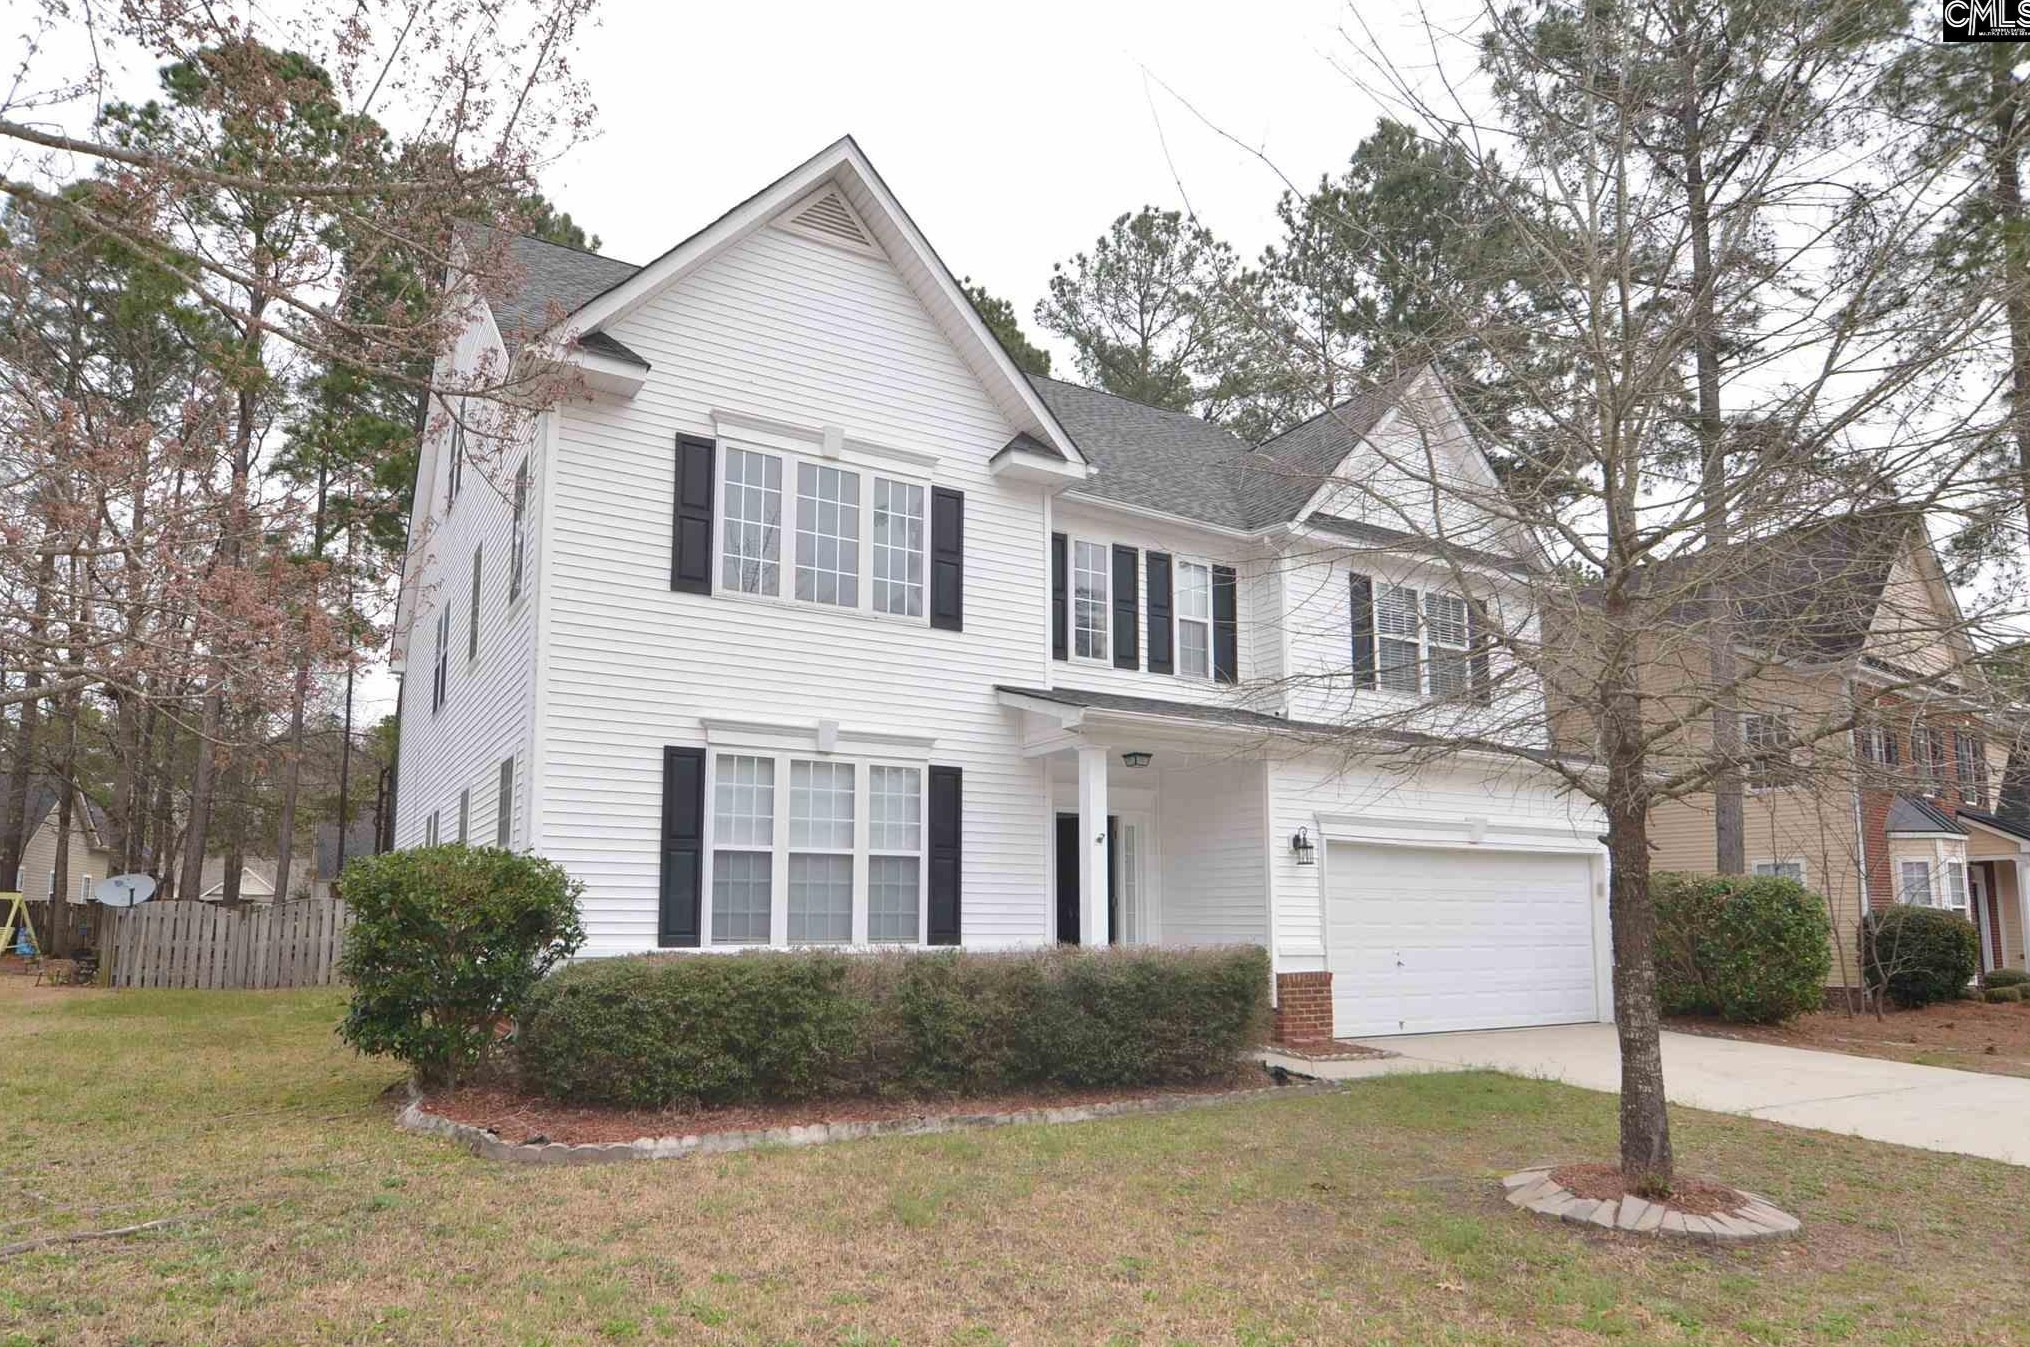 541 Abbeyhill Dr, Columbia, SC 29229